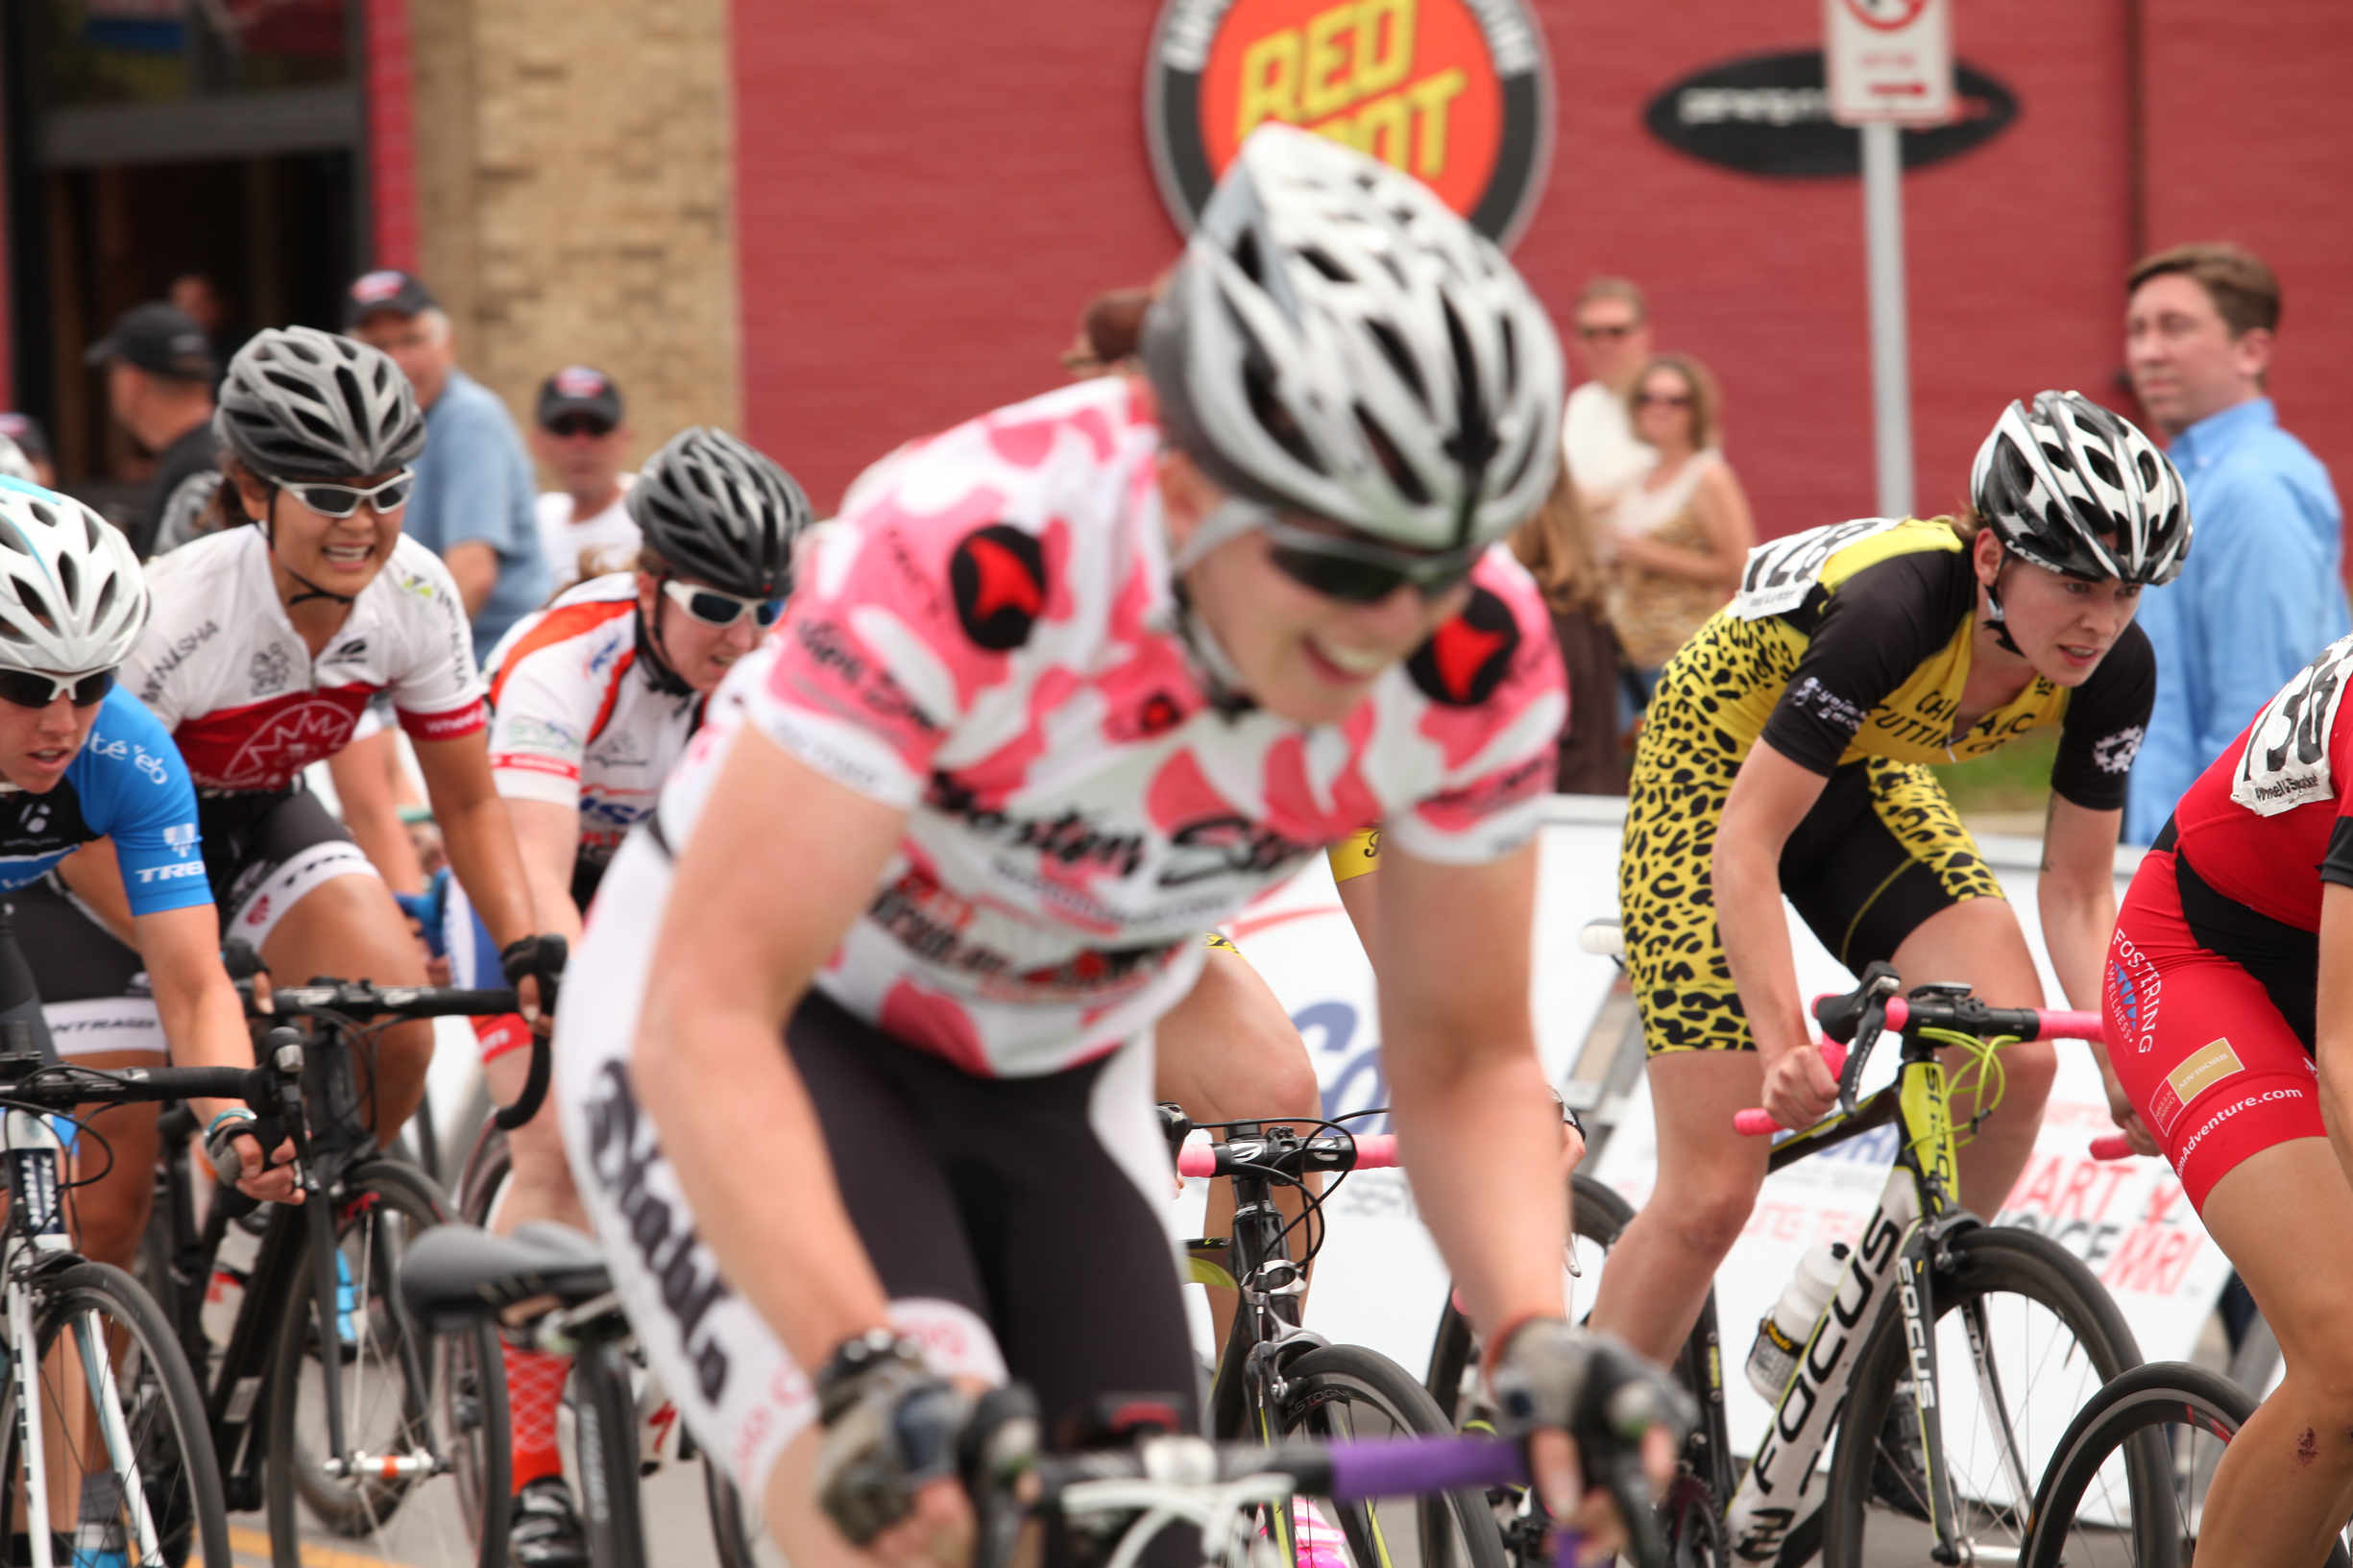 Jenny Youngwerth kept herCow Jersey with ease. Leopard print makes the Crew easy to spot.